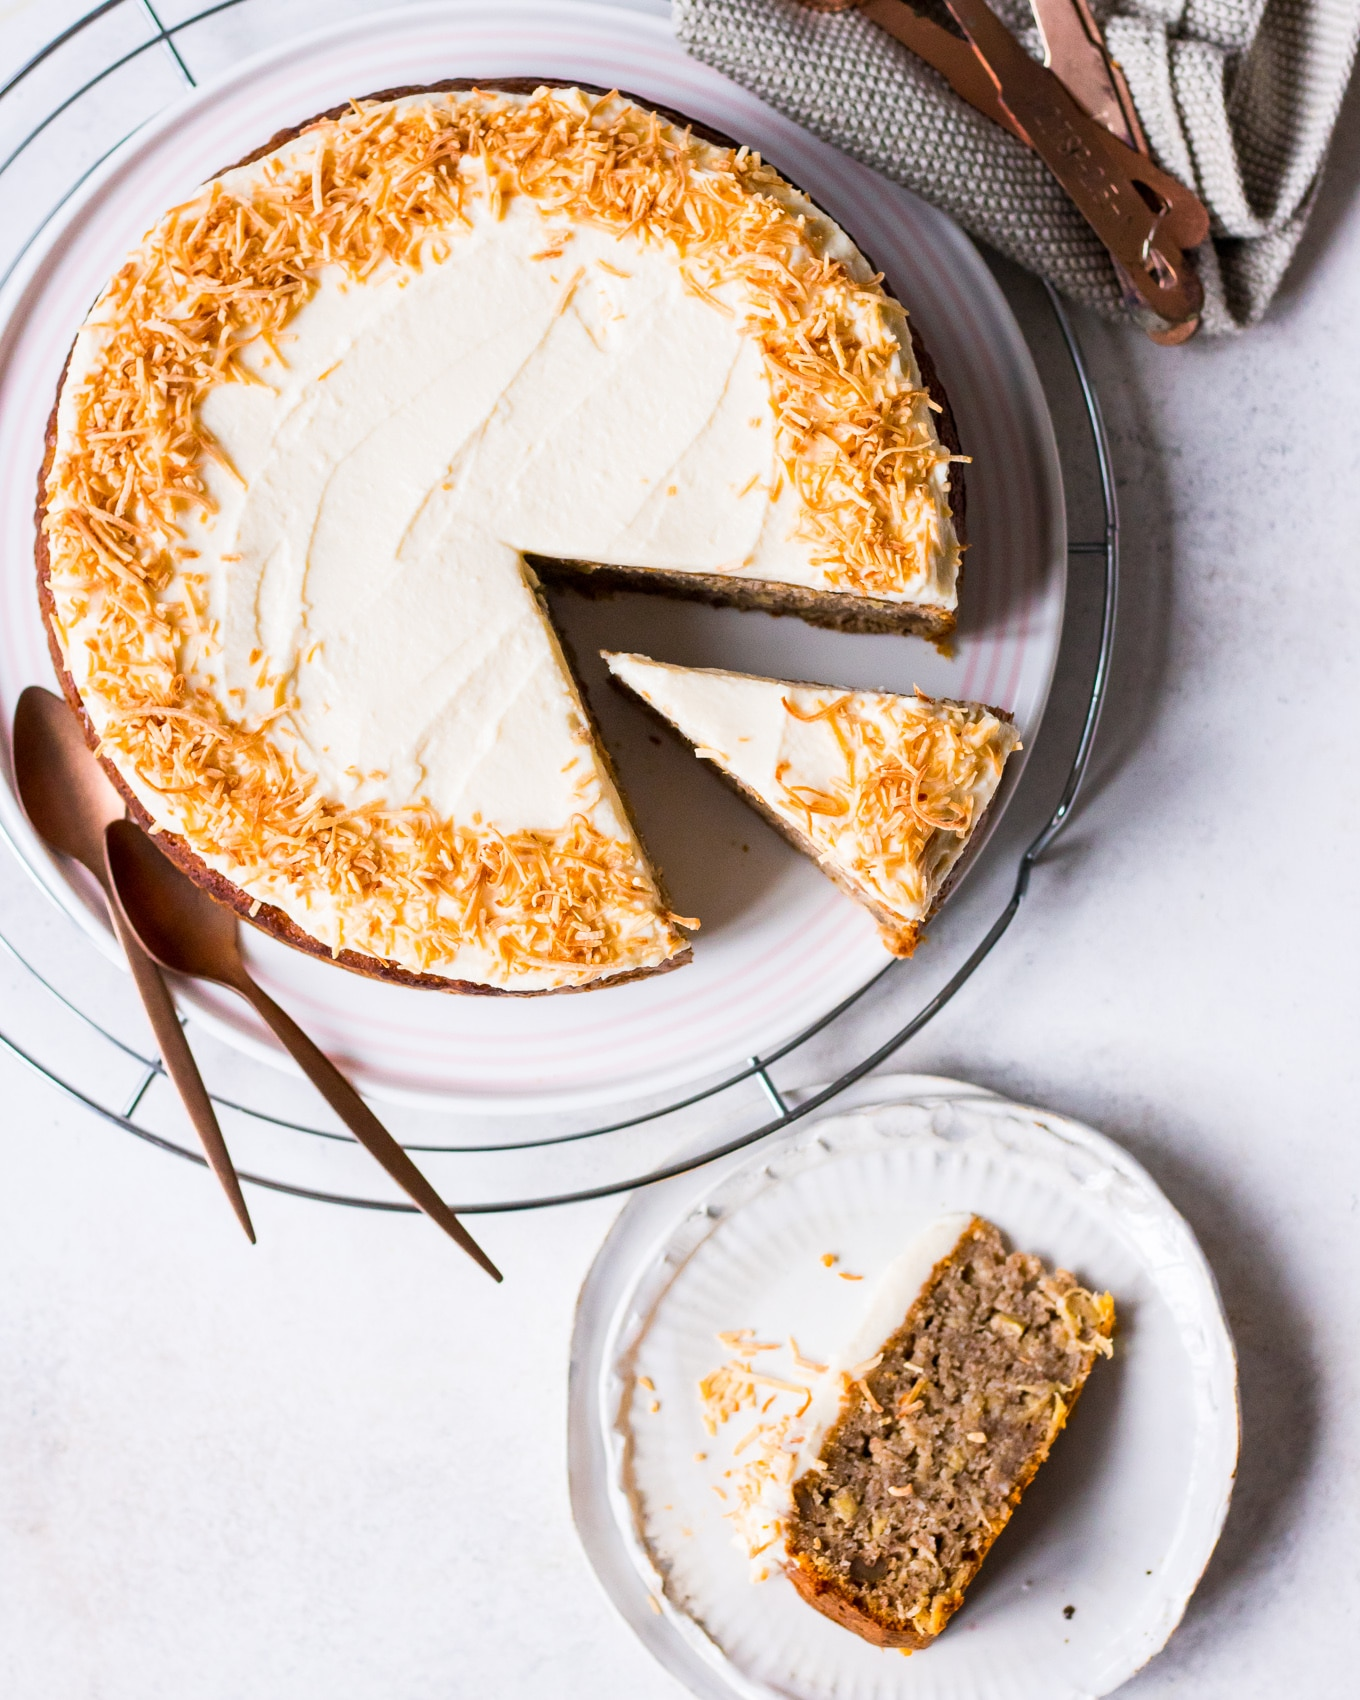 Flatlay of hummingbird cake with slice on plate, shredded coconut on frosting